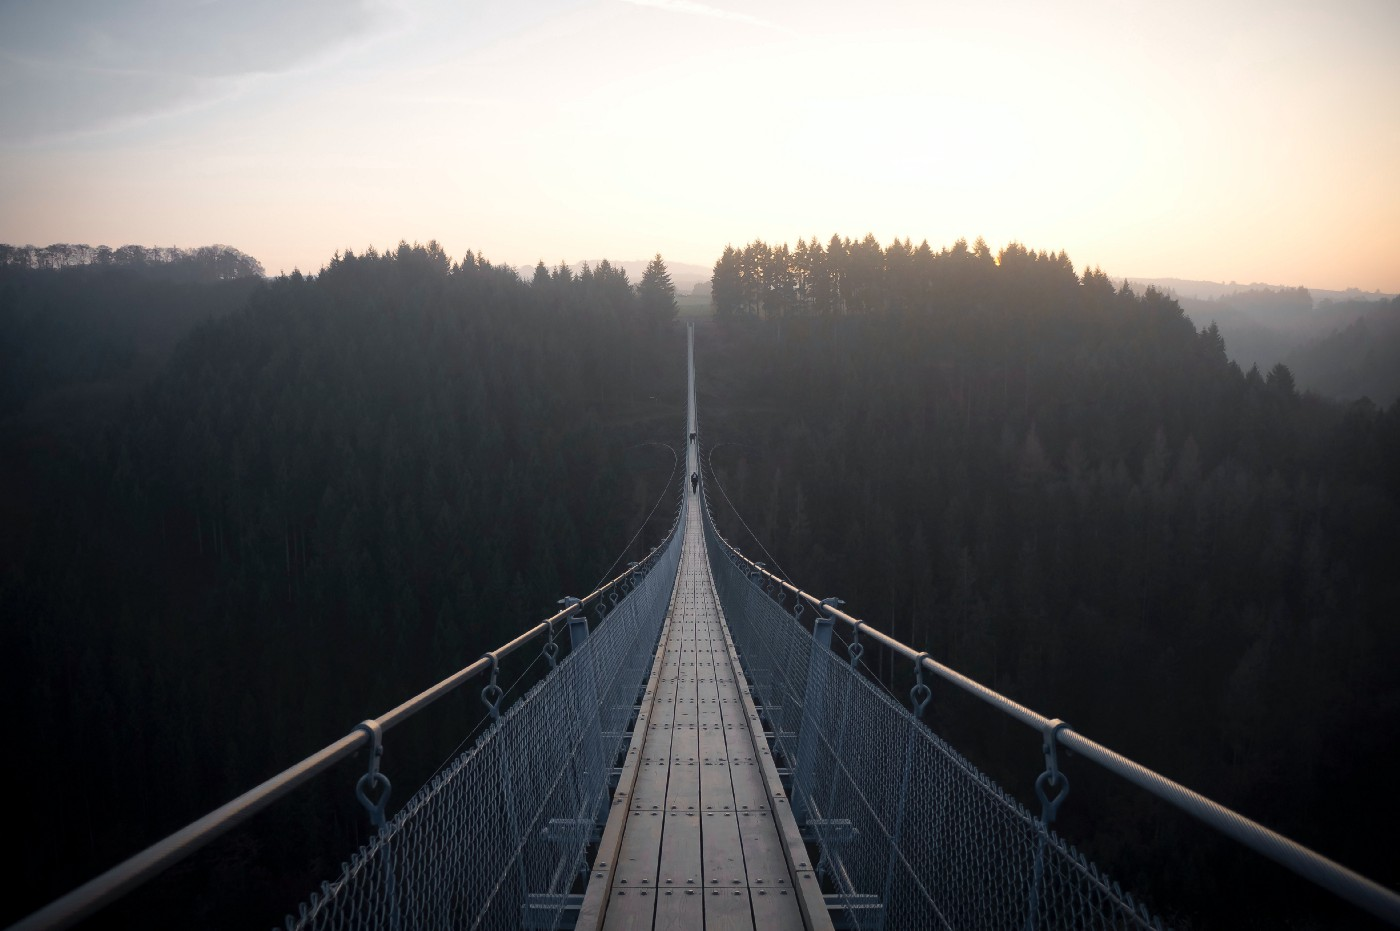 A narrow bridge, viewed from one end, over a thick forest.